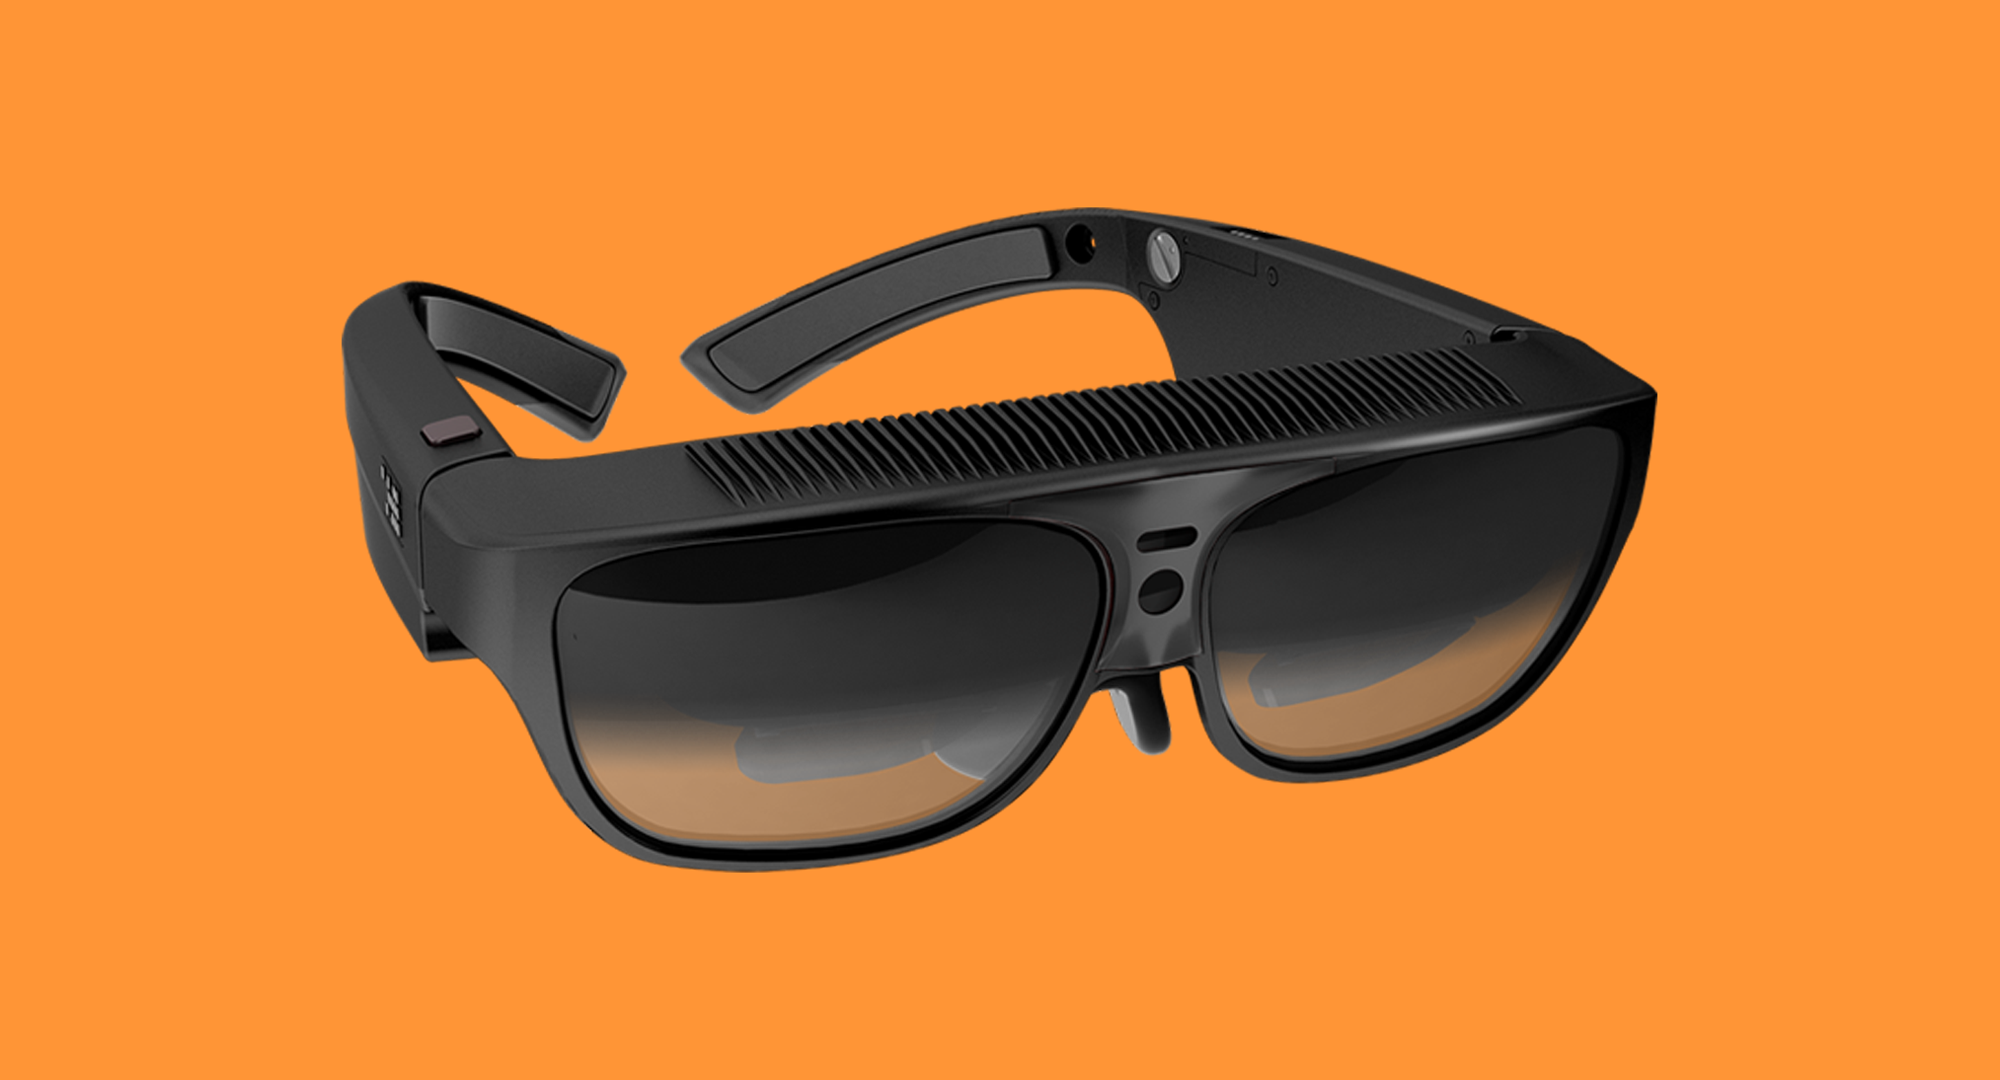 0ff432901836 Commuter Rail Workers in Boston Are About to Get Bionic Eyes - MIT  Technology Review